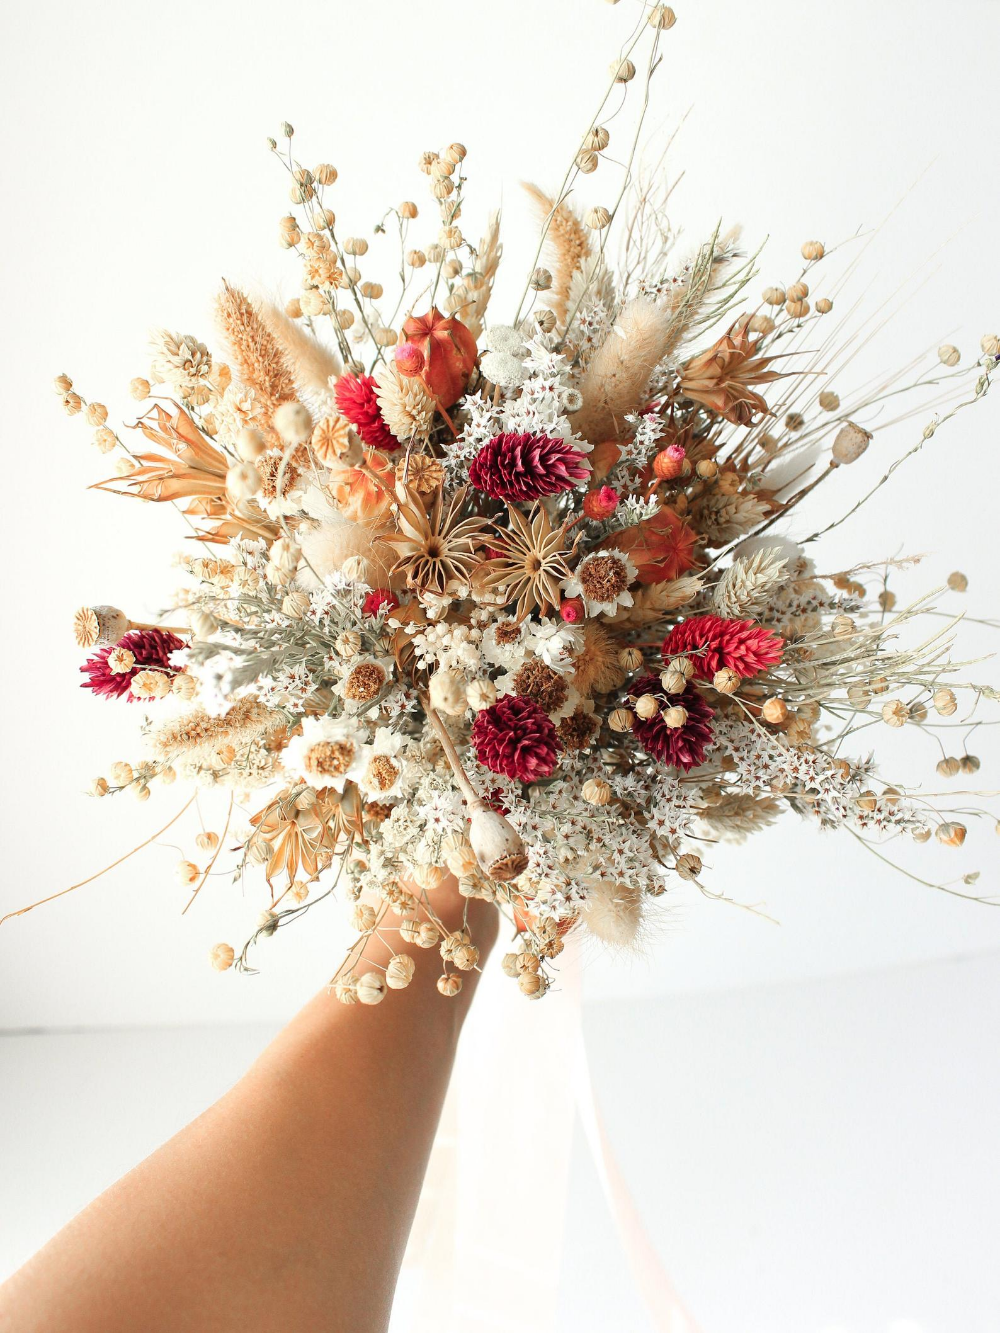 Festival Meadow Bridal bouquet / Dry Flowers bouquet for Wedding / Rustic Boho Brides and Bridesmaid bouquet / Wildflowers Dried bouquet #flowerbouquetwedding